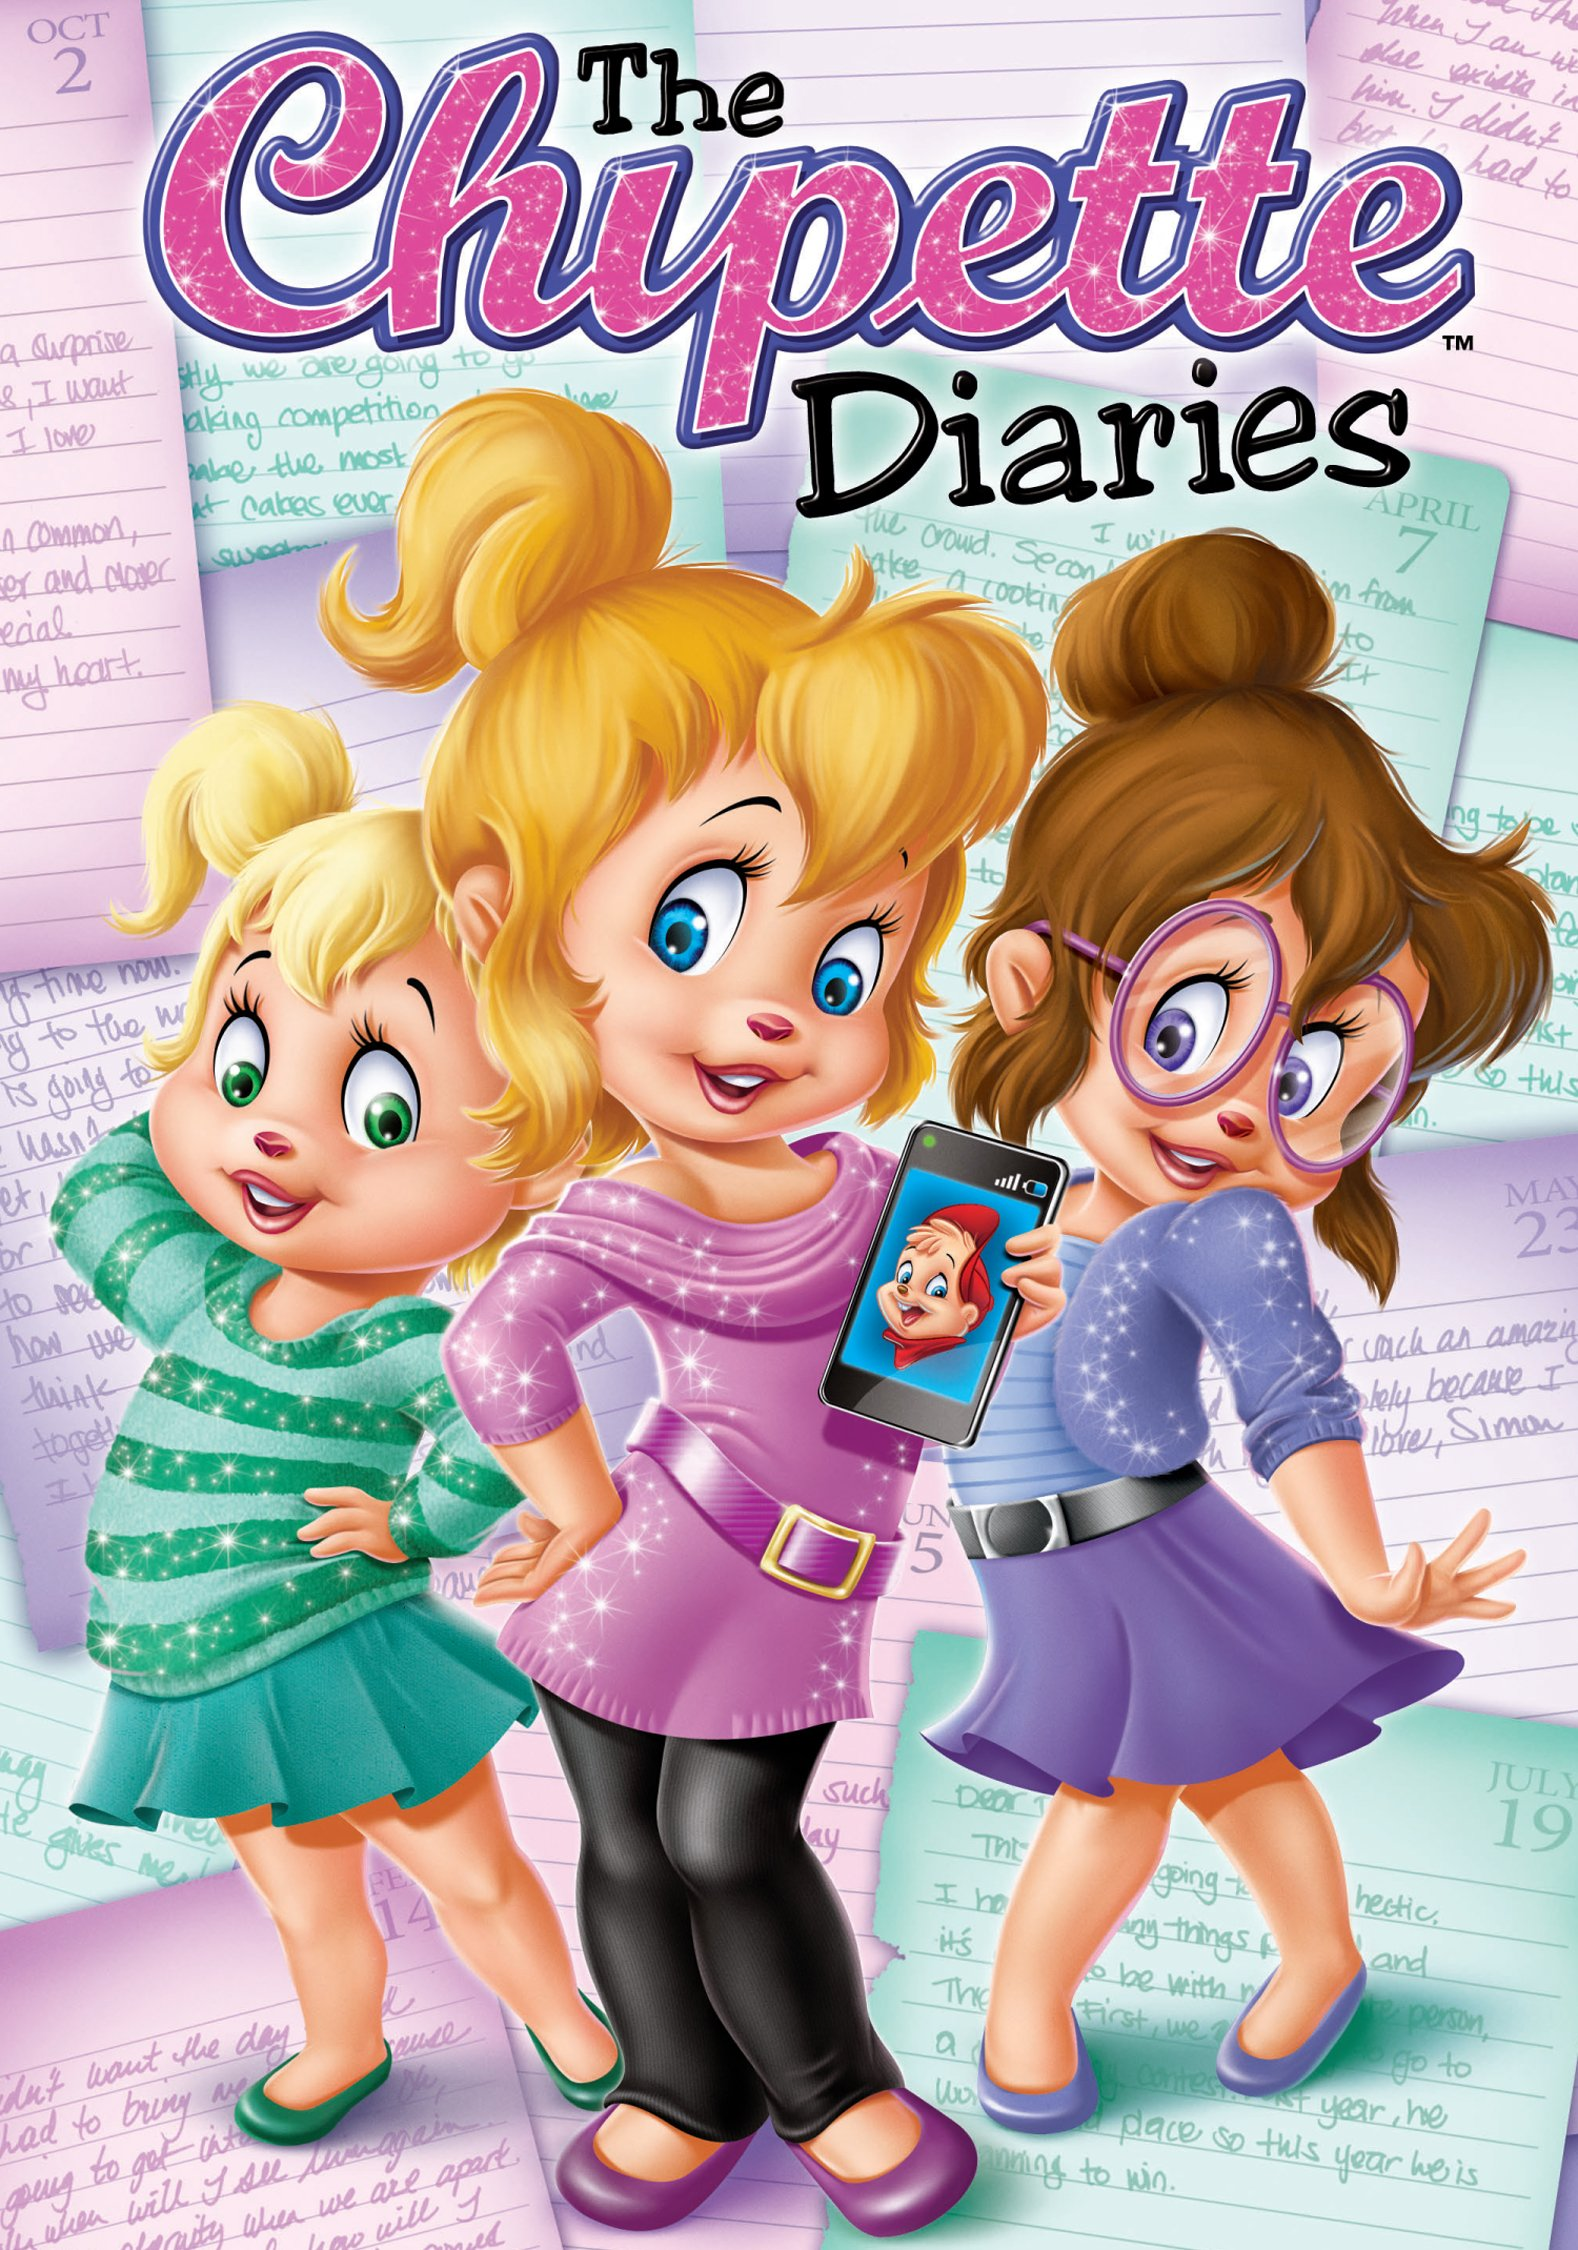 The Chipette Diaries